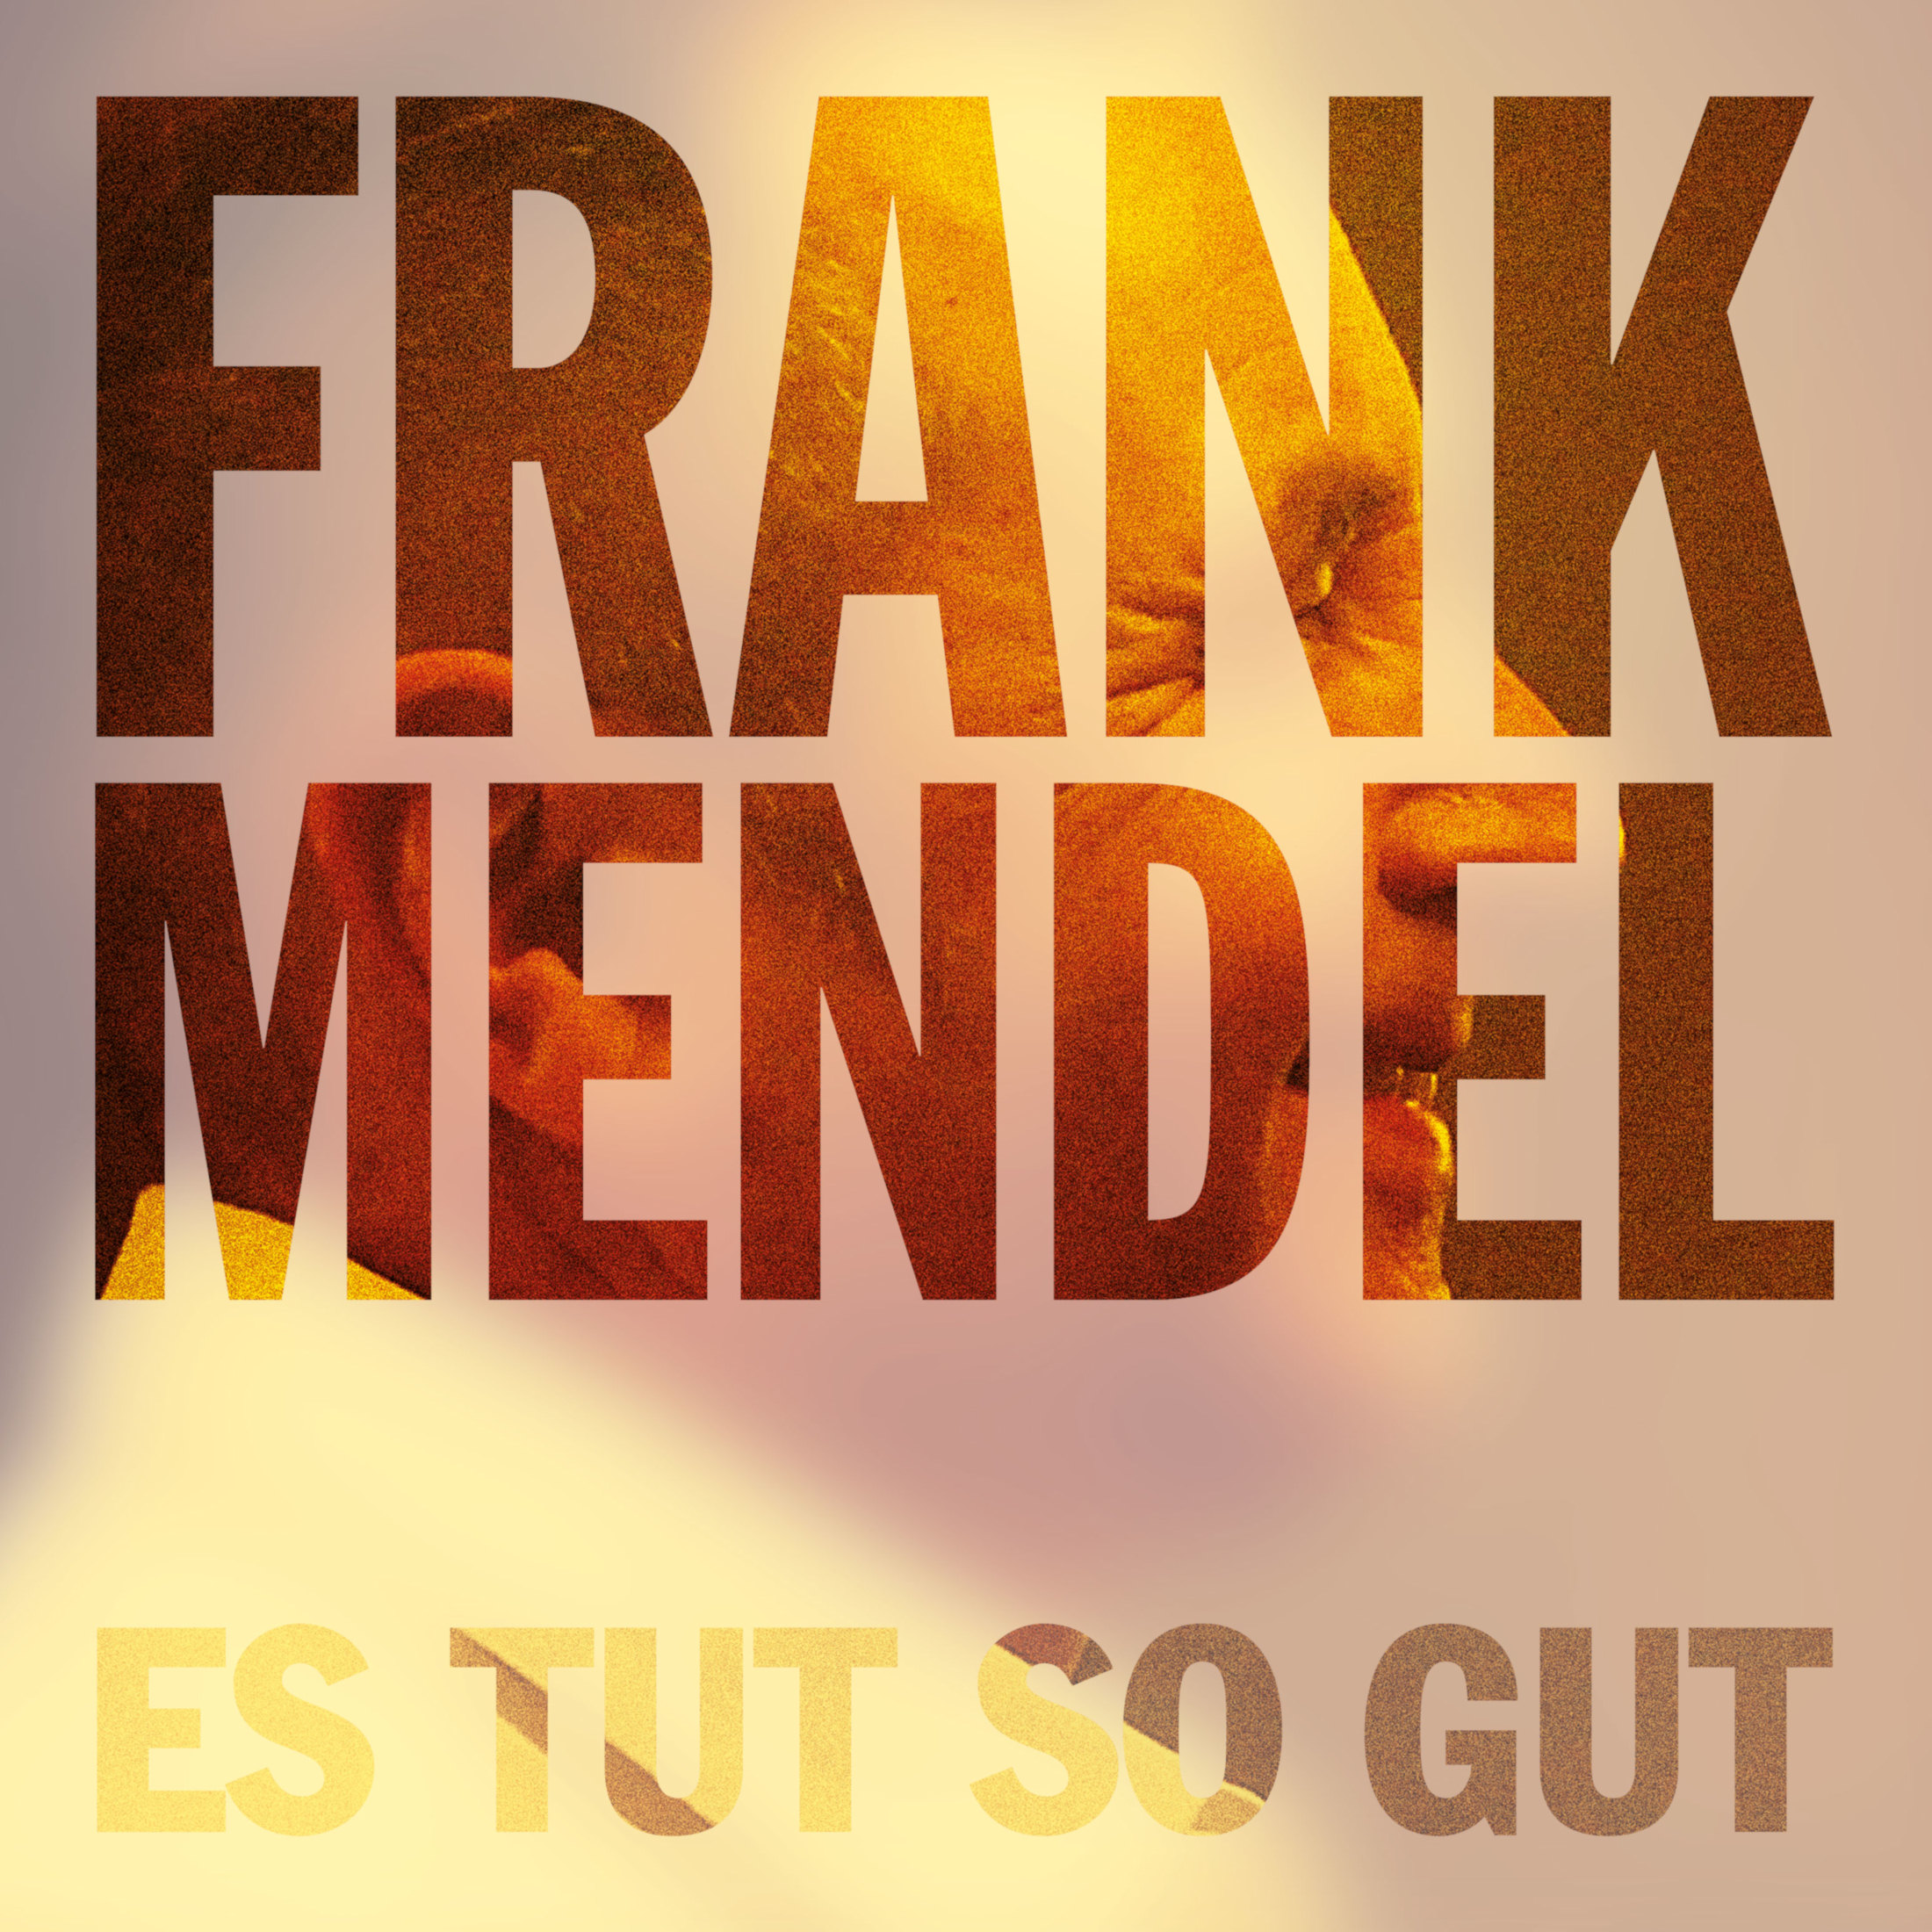 Frank Mendel, Es tut so gut, Single-Cover